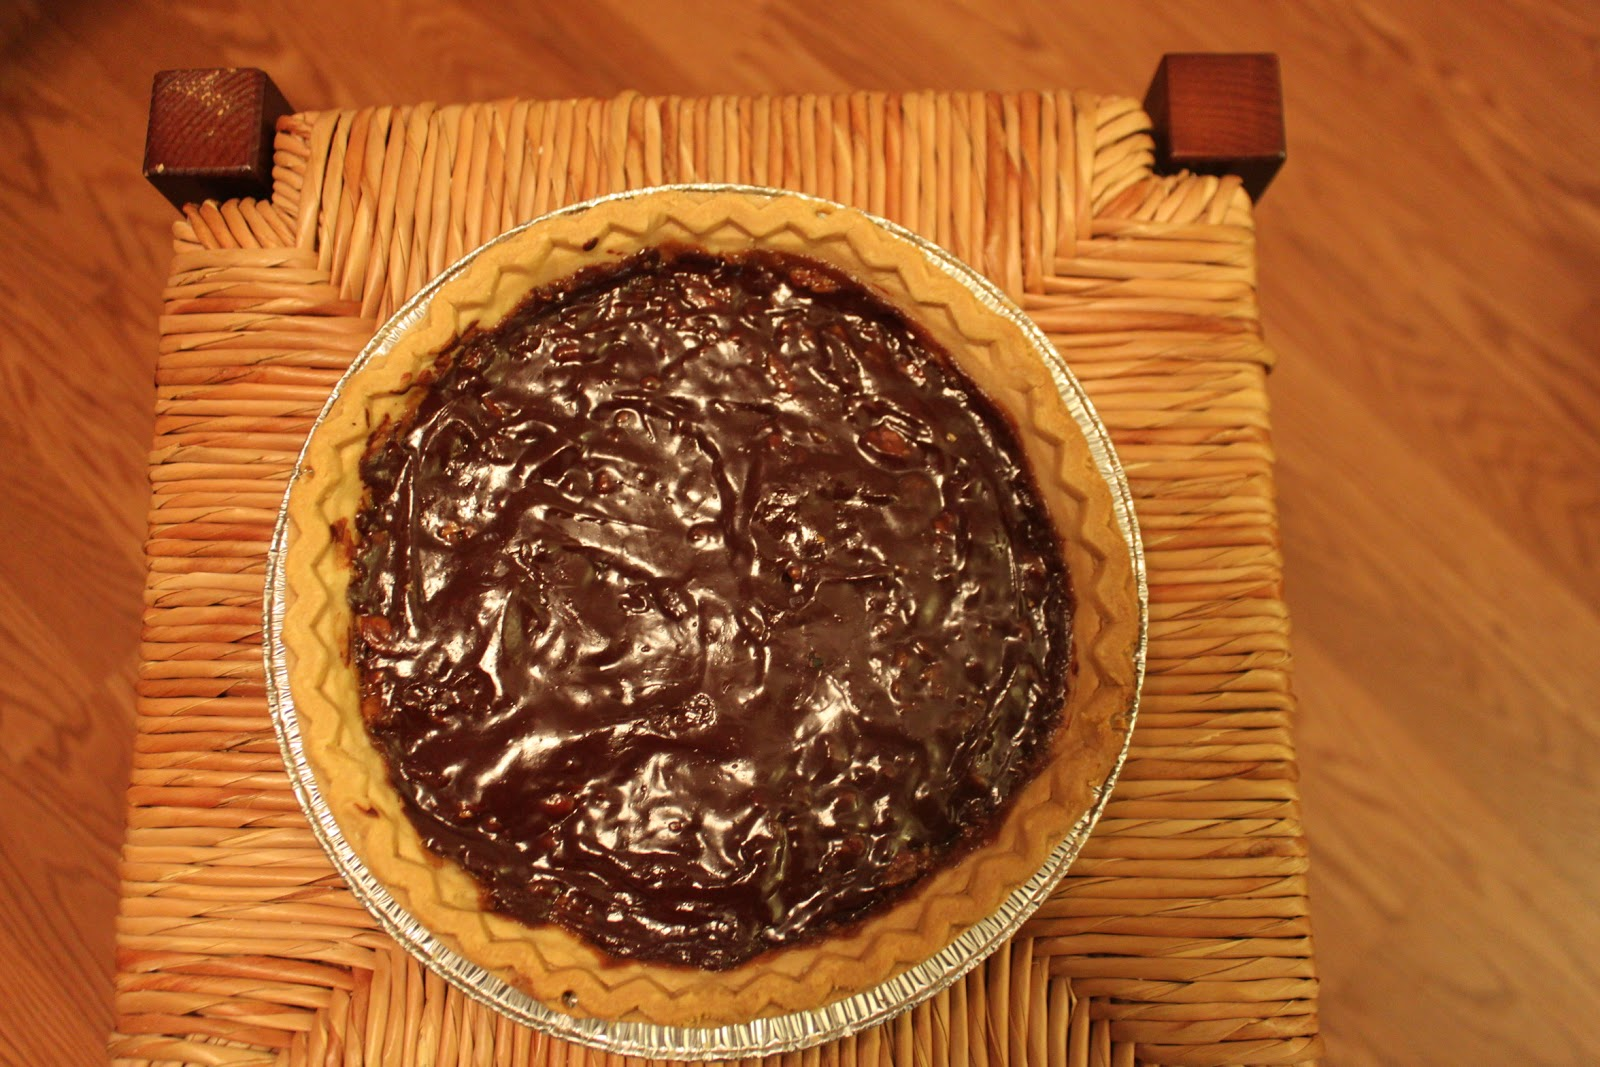 Today I Cooked...: Bittersweet Chocolate Pecan Pie(s)